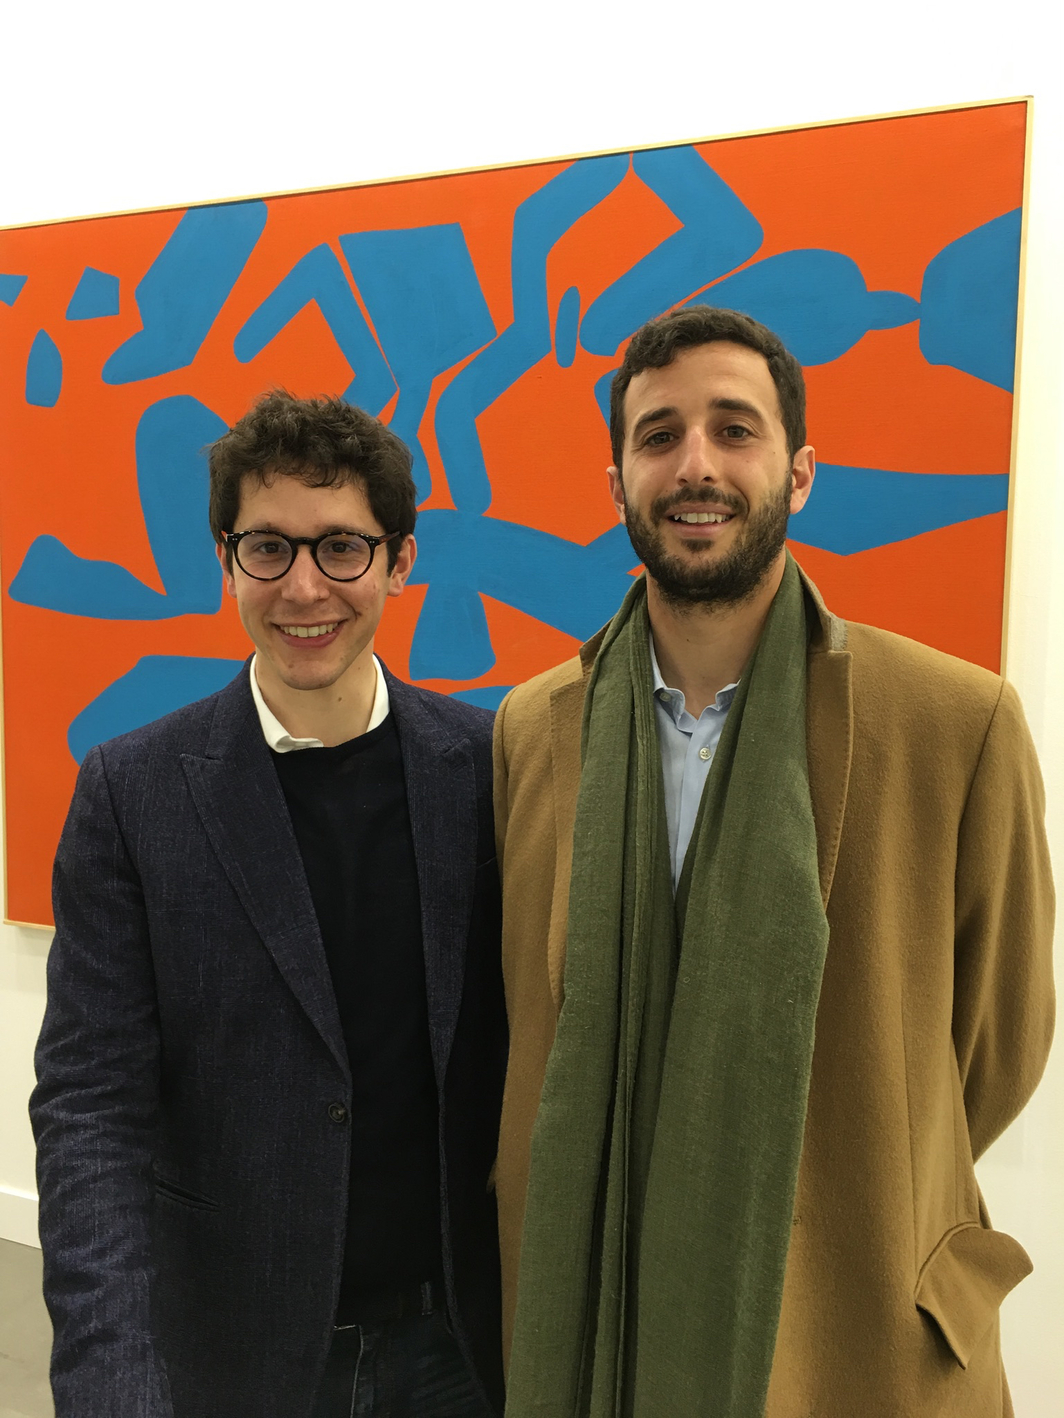 Gallerist Tommaso Calabro with Lorenzo Rebecchini of Sotheby's Italy